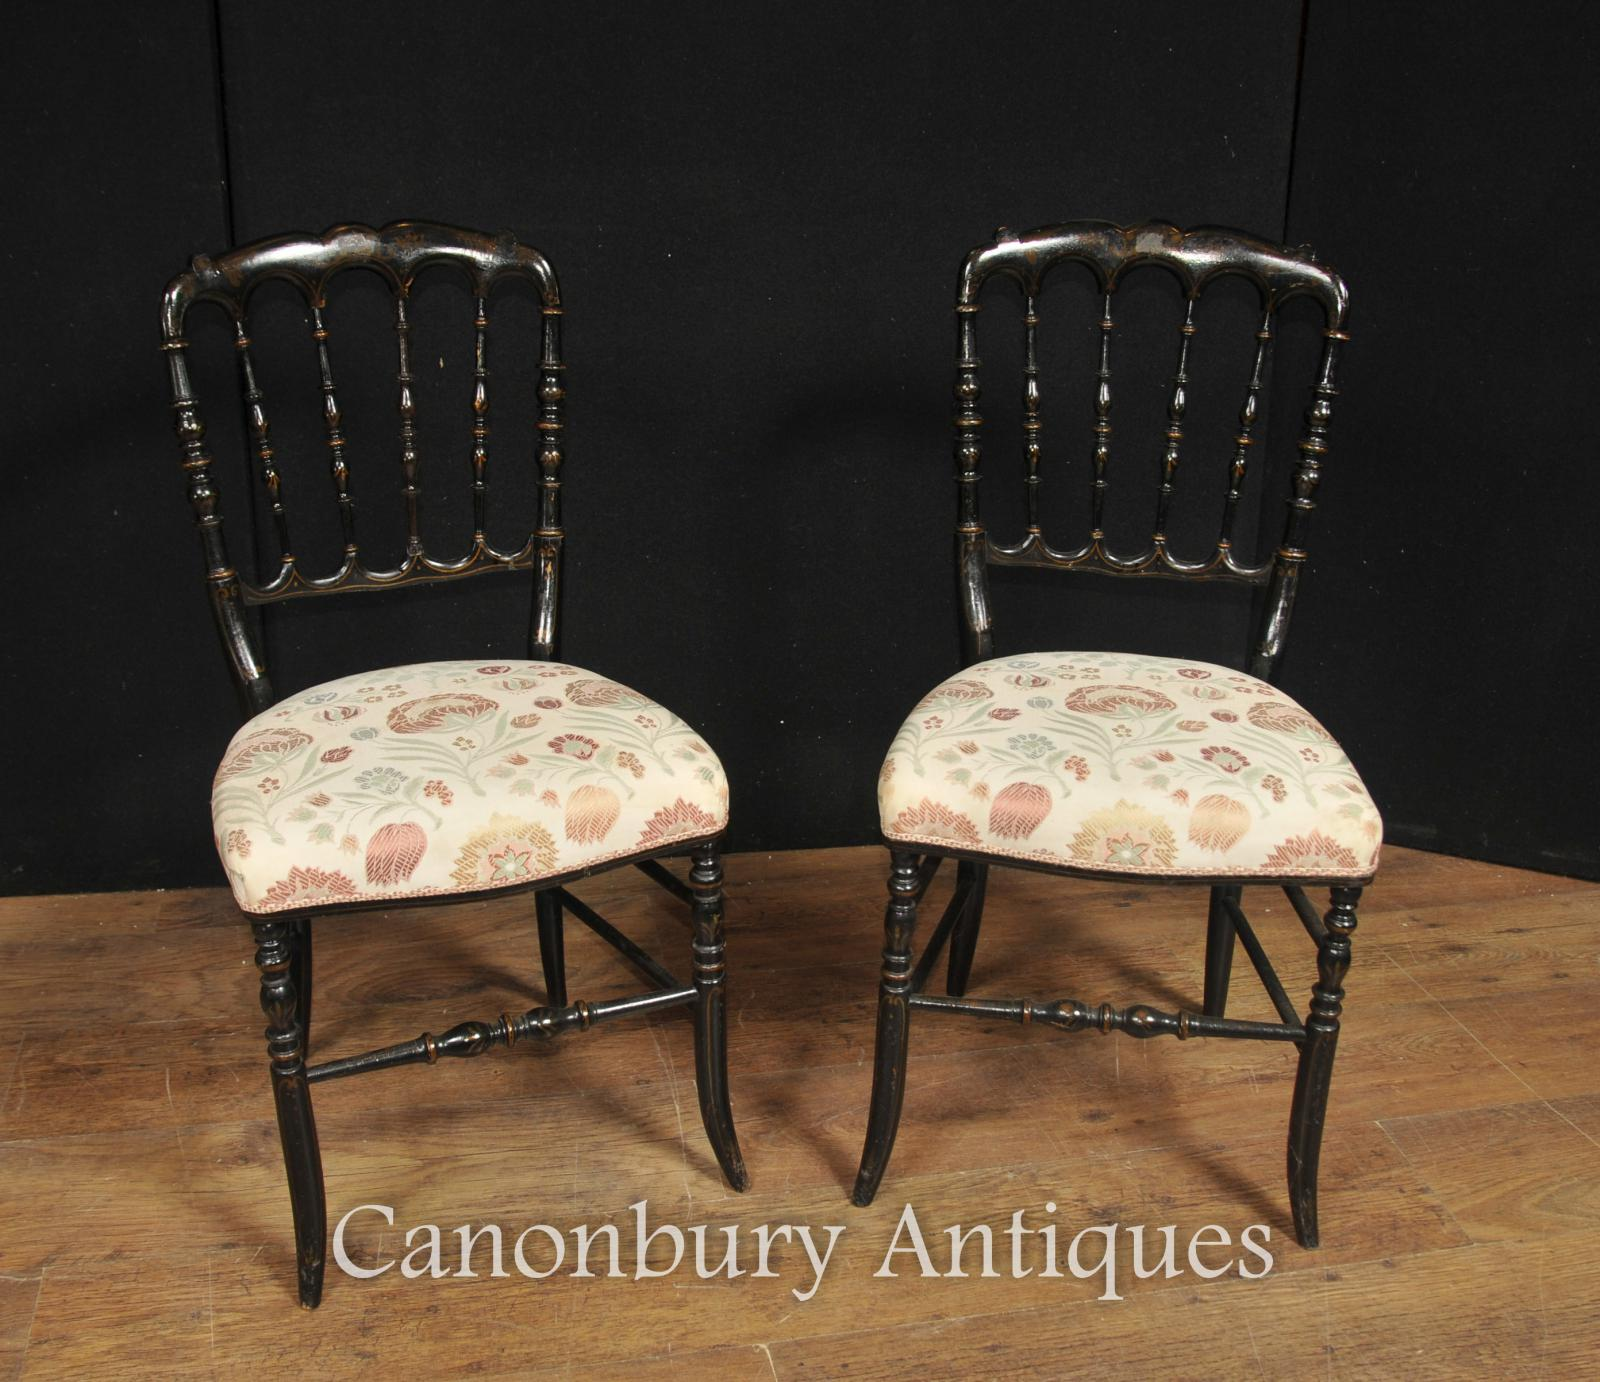 Pair Antique Chinese Black Lacquer Dining Chairs Spindle Back EBay